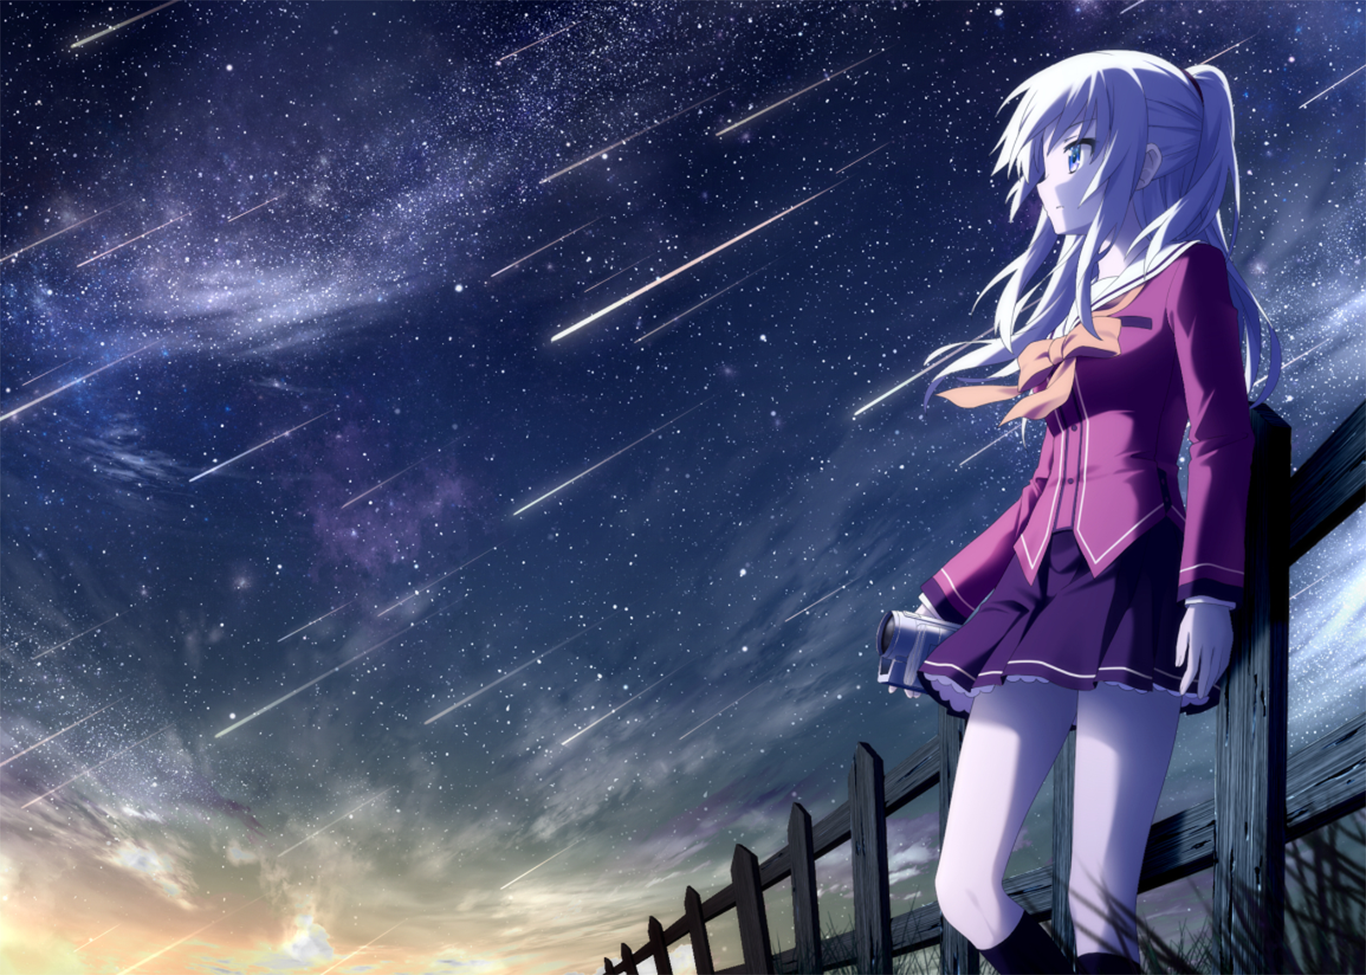 Nao Tomori Lonely Charlotte Anime girls Wallpaper HD 2015   anime     Nao Tomori Lonely Charlotte Anime girls Wallpaper HD 2015